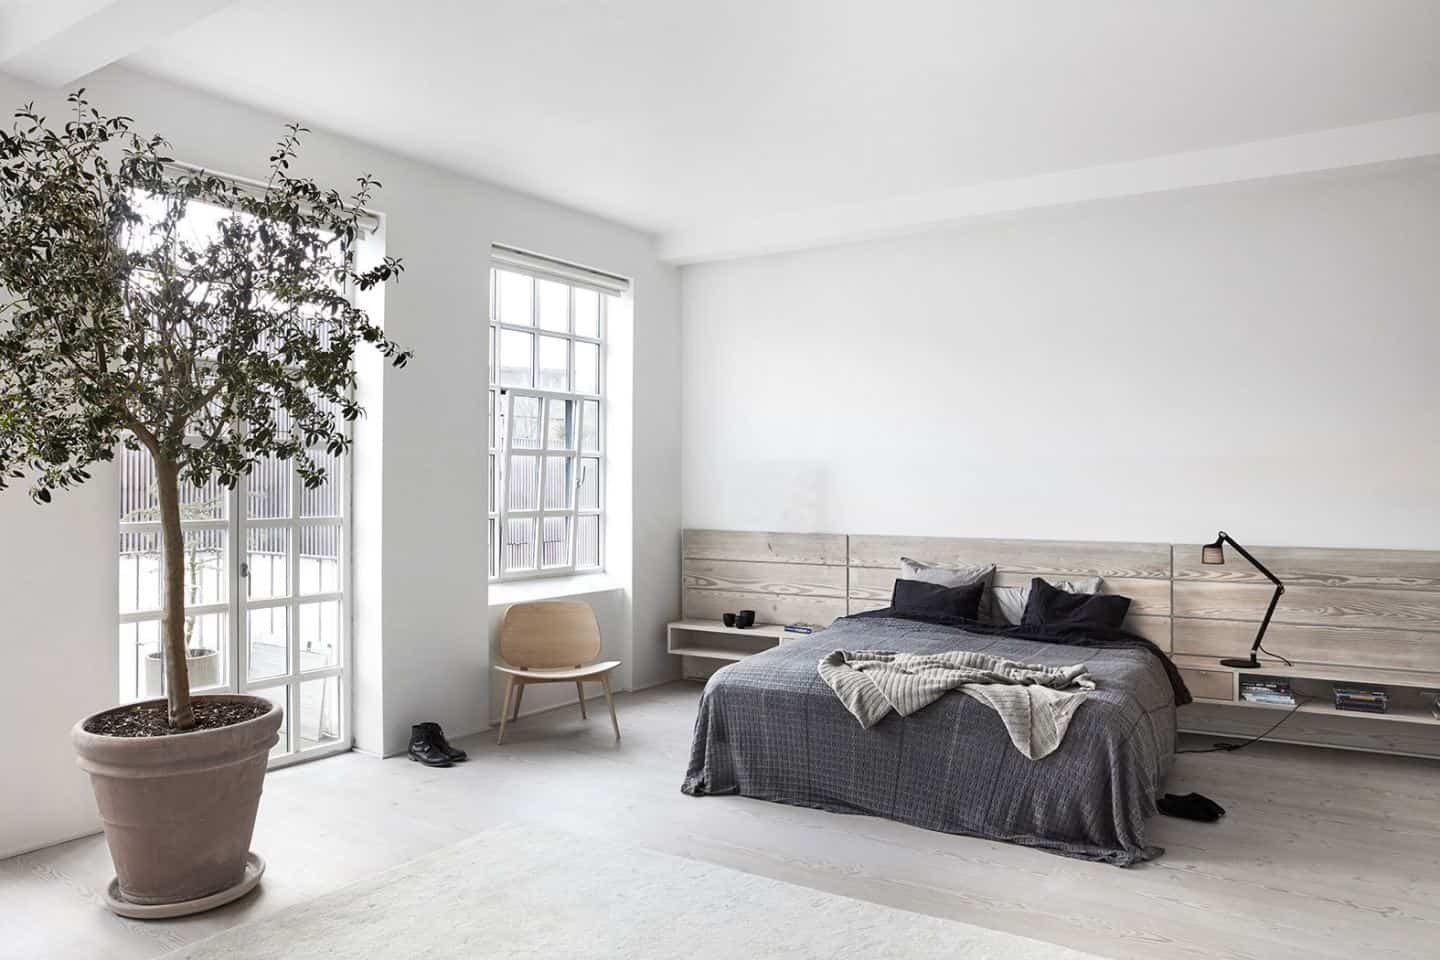 Bedroom of Vipp Owner Jette Egelund in her converted factory home